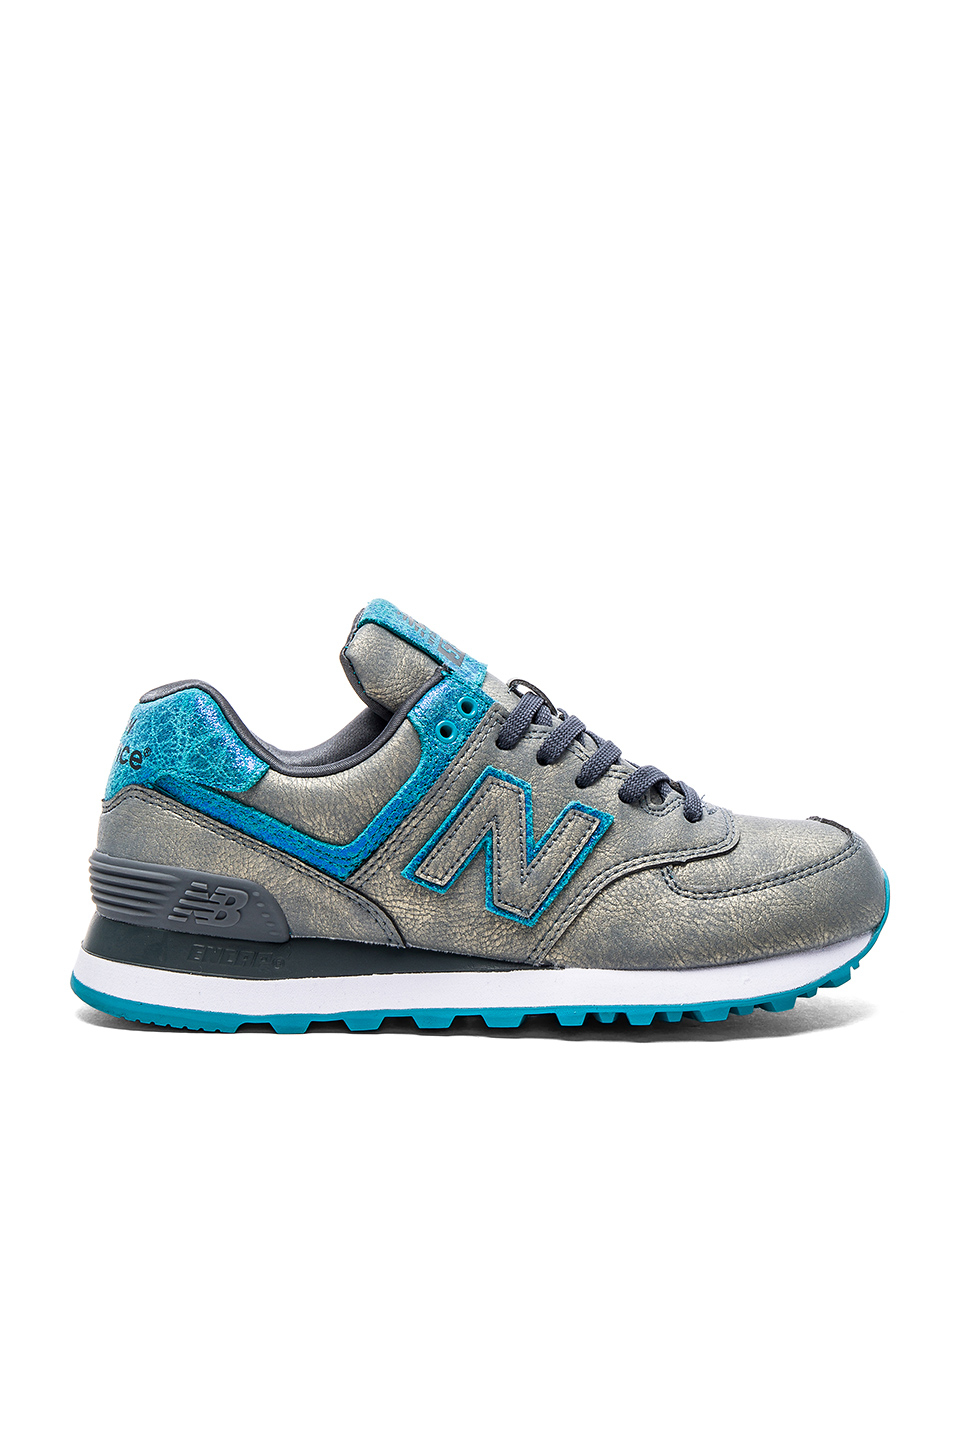 new balance women's 574 mineral glow casual sneakers